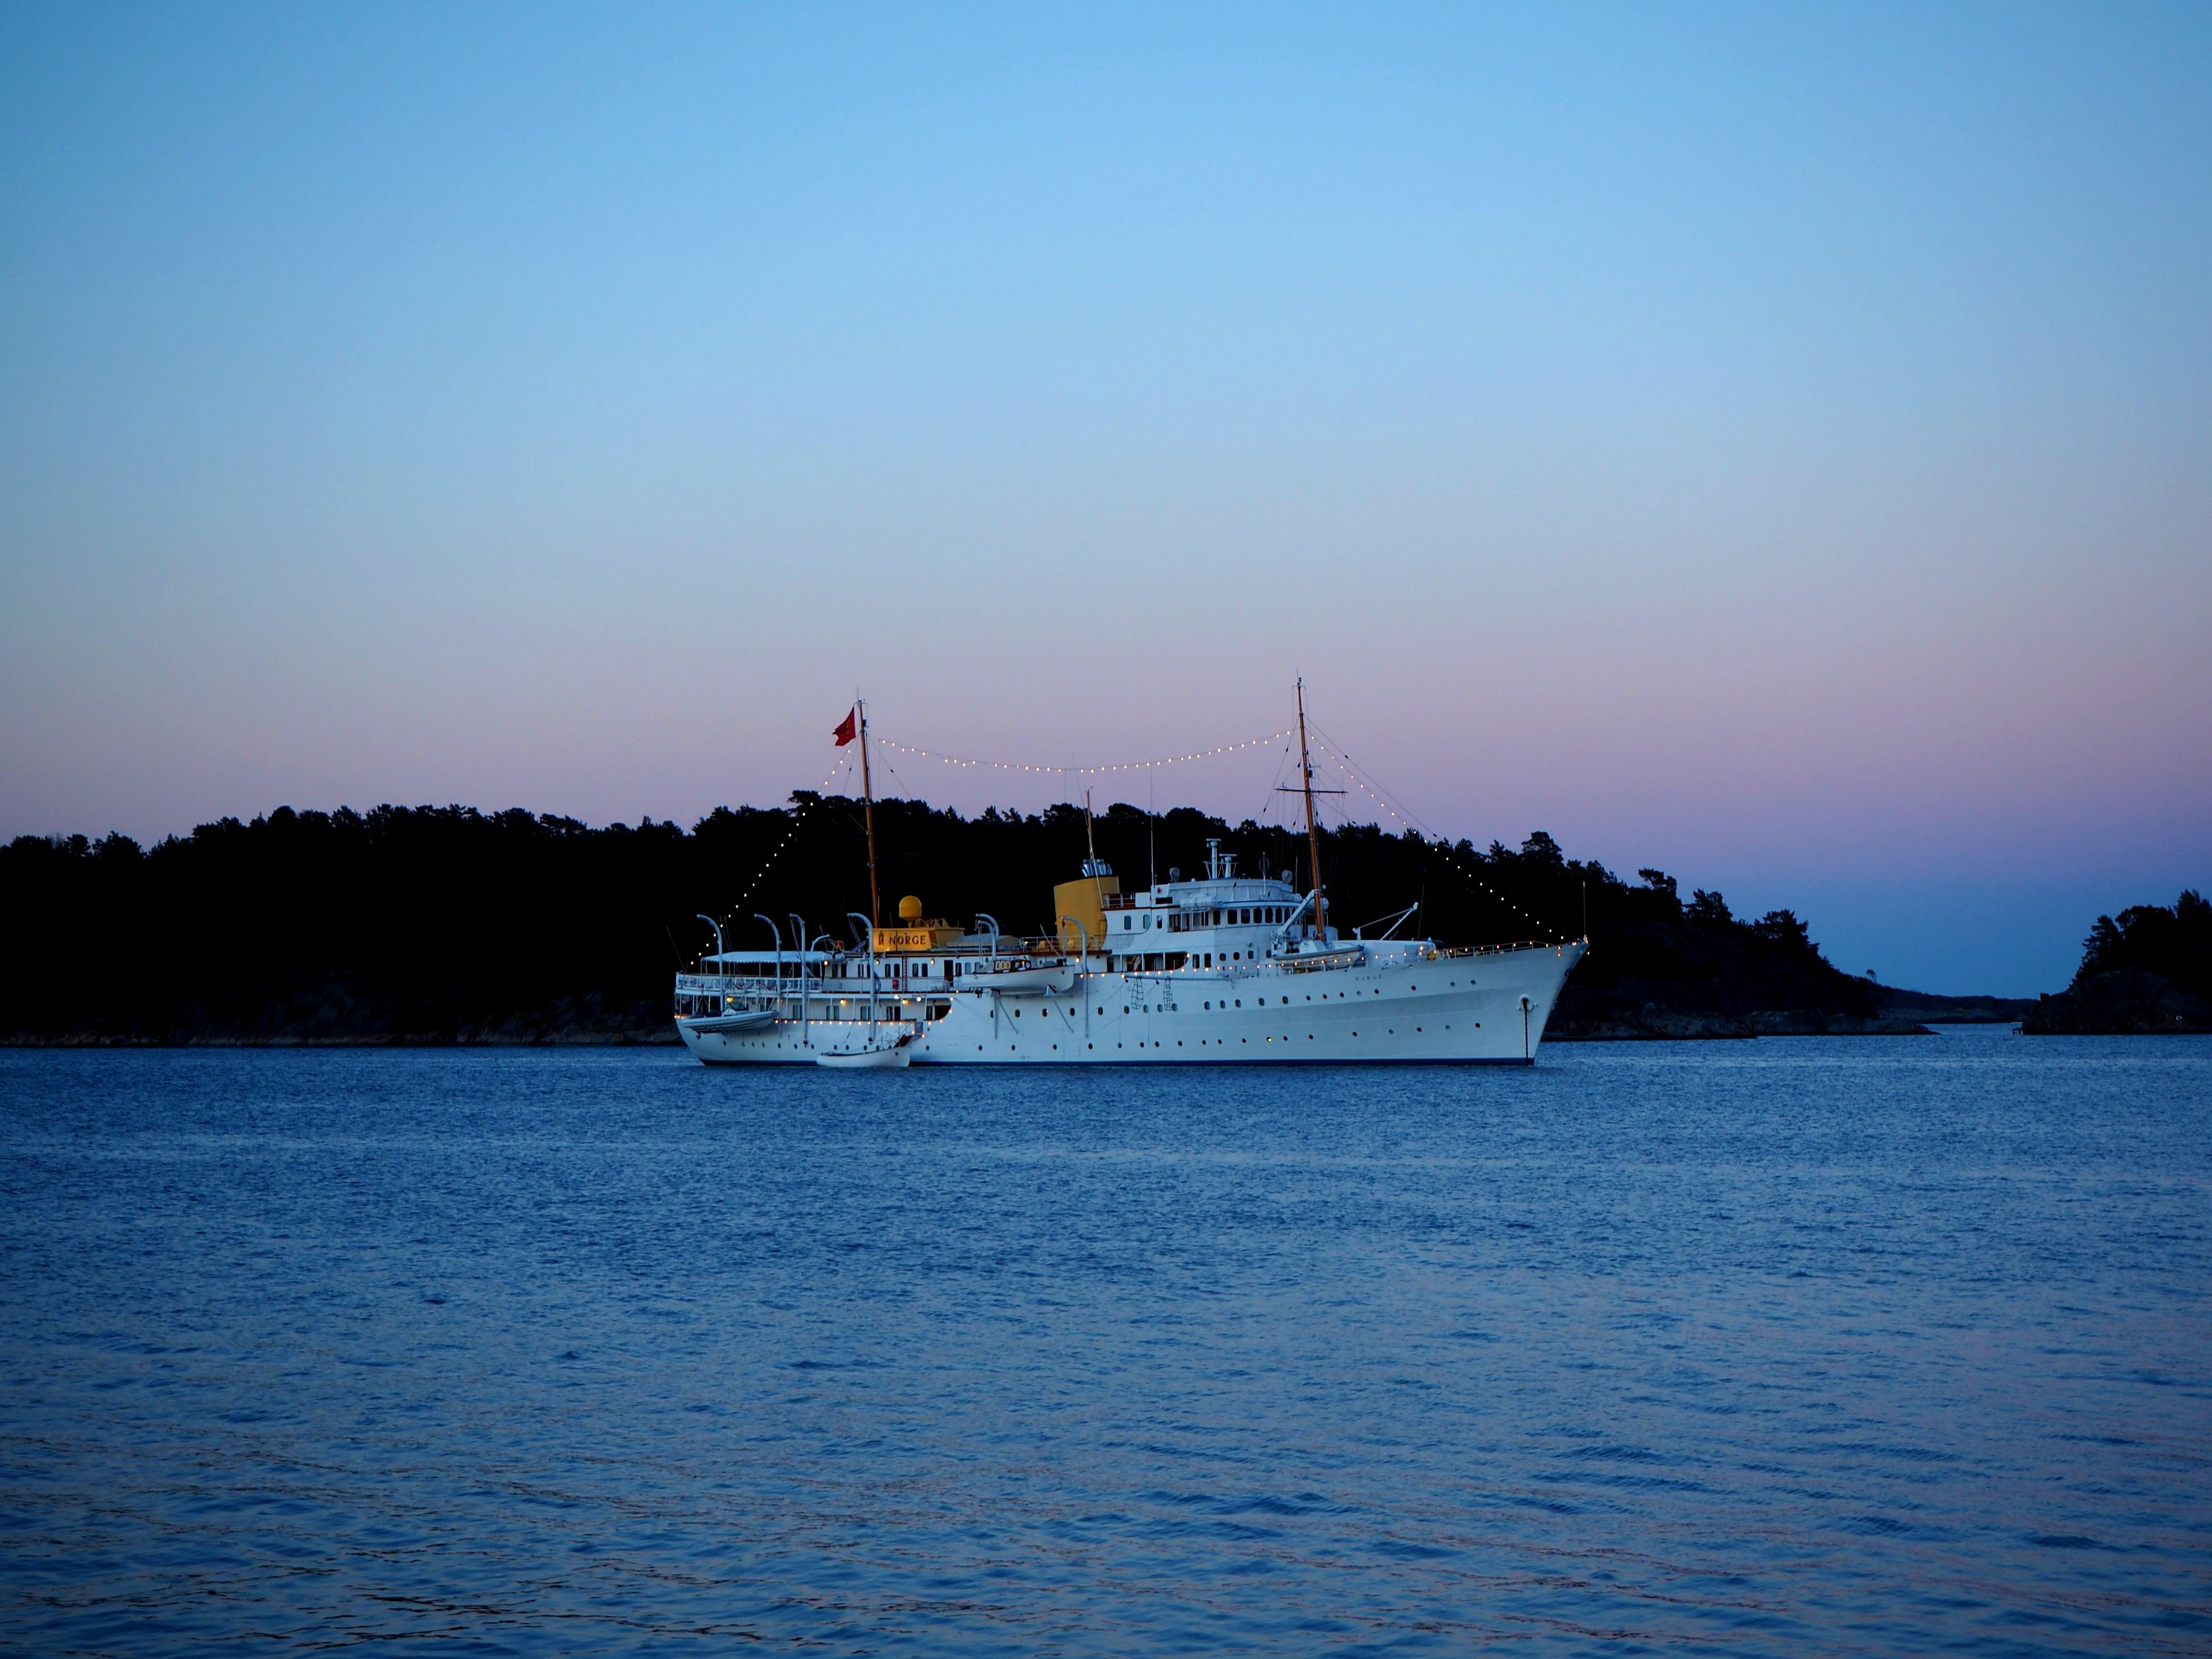 Kongeskipet (Royal Yacht of the King of Norway)